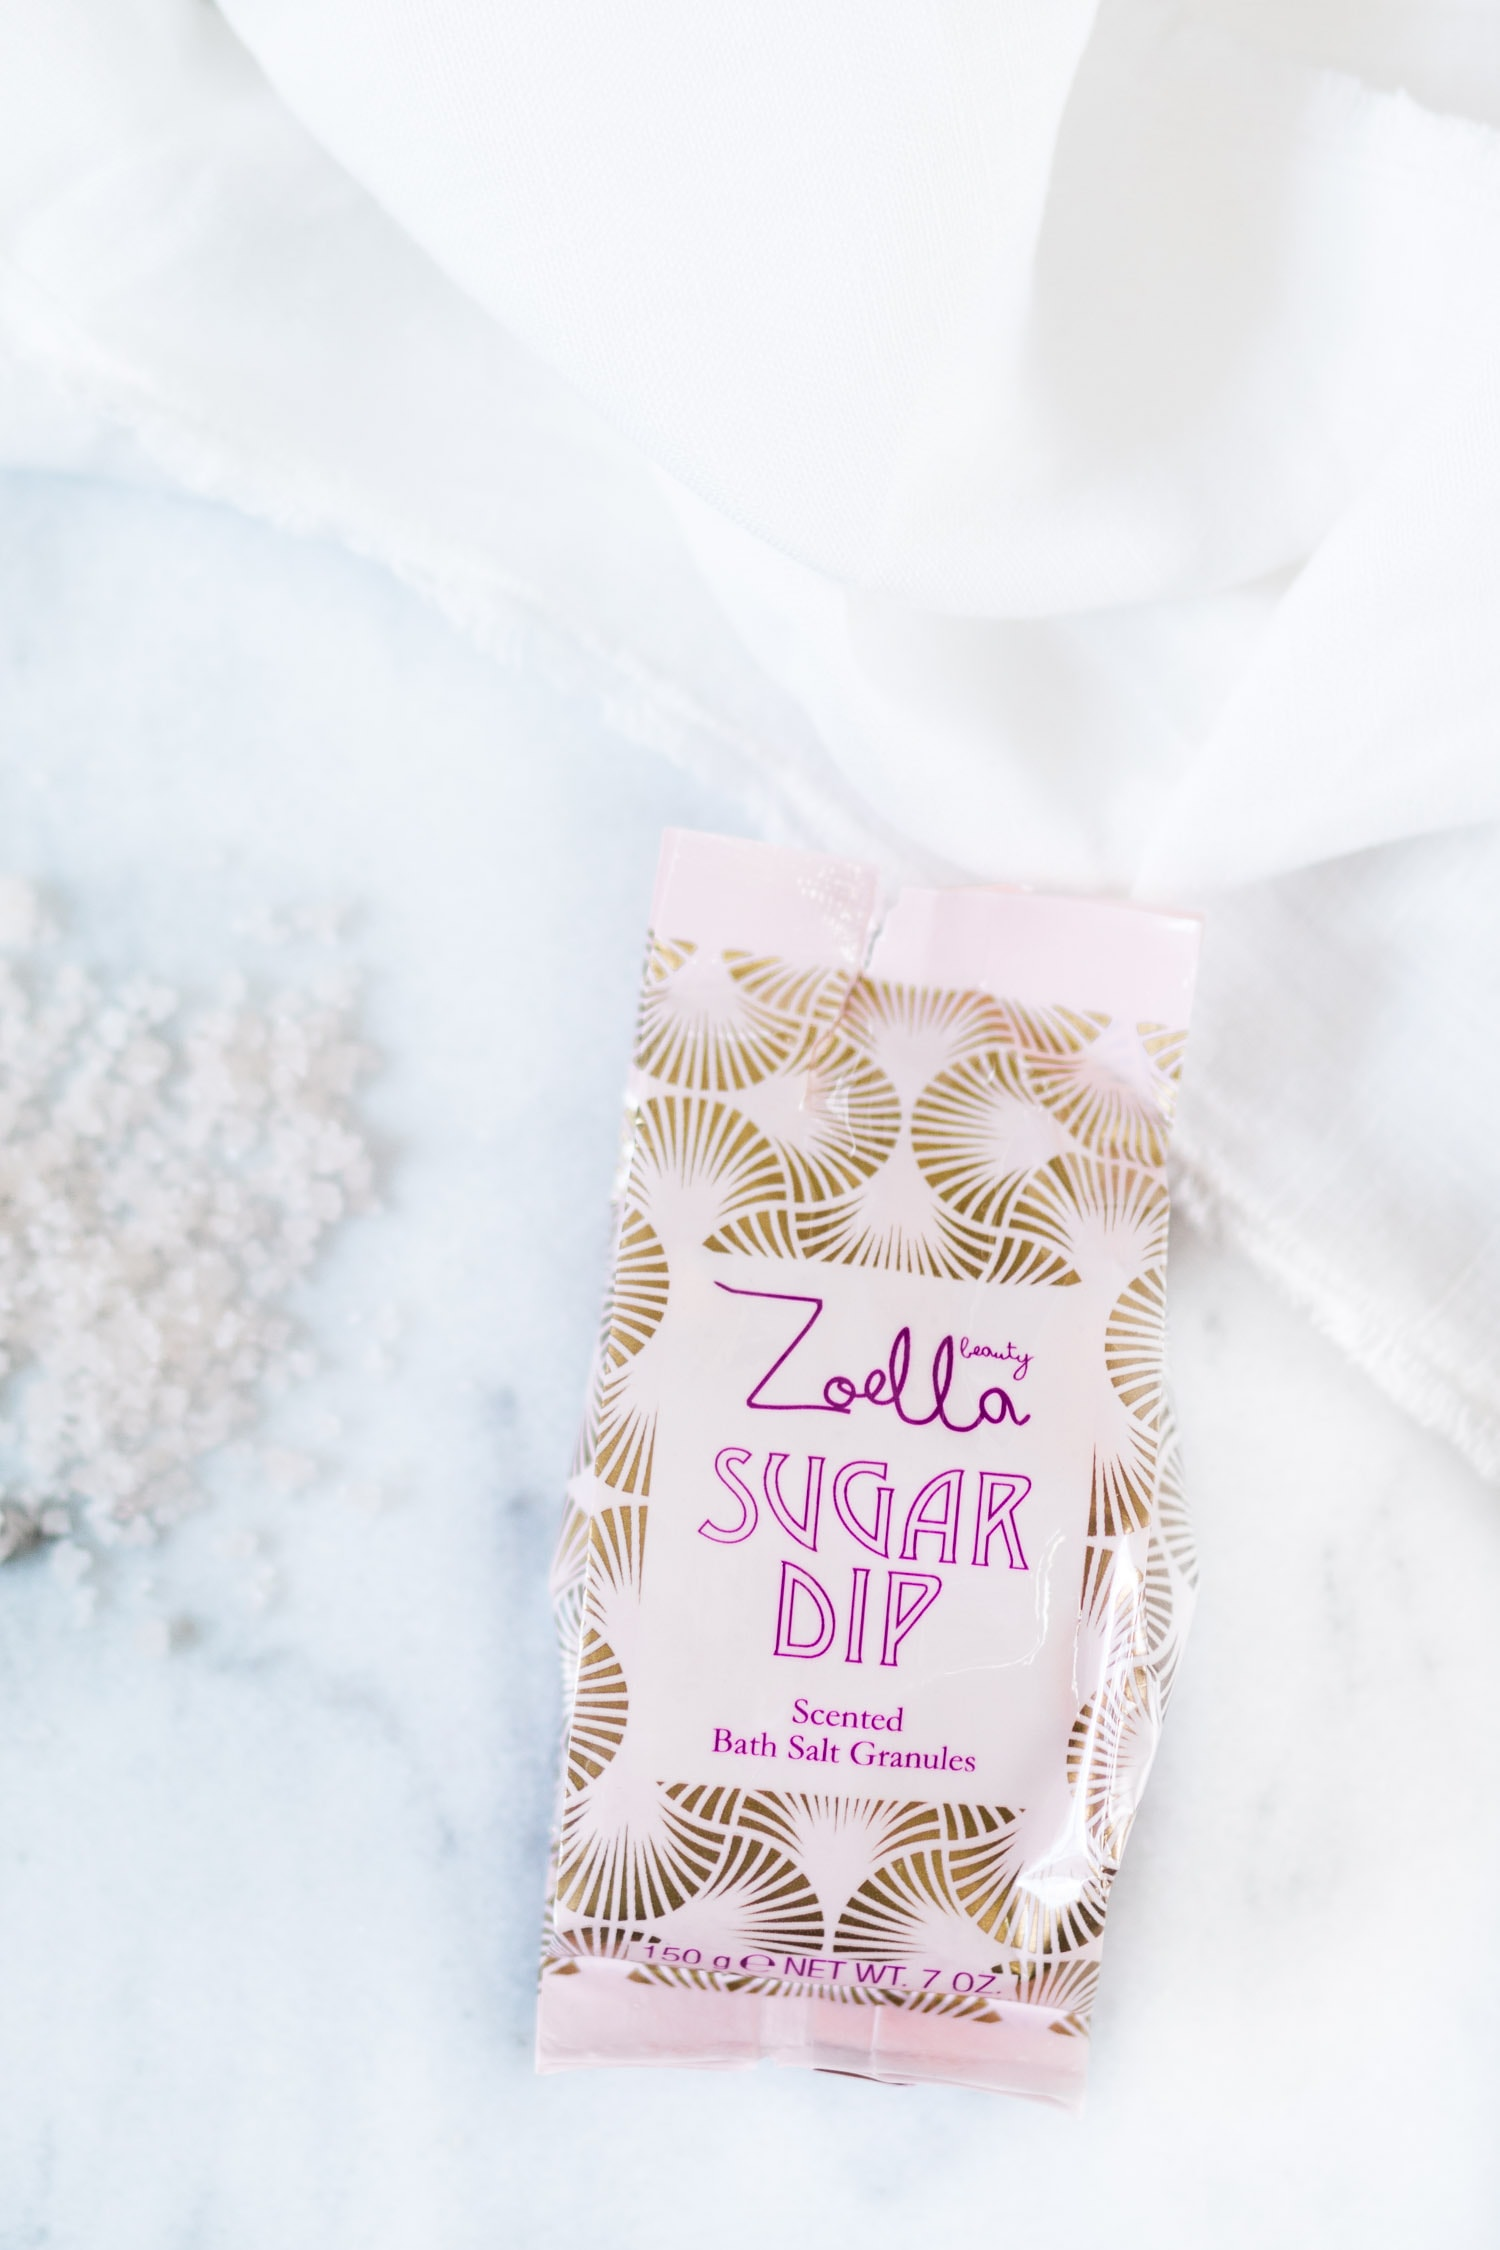 Zoella Beauty Sweet Inspirations |  Sugar Dip scented bath salt granules review | beauty blogger Ashley Brooke Nicholas